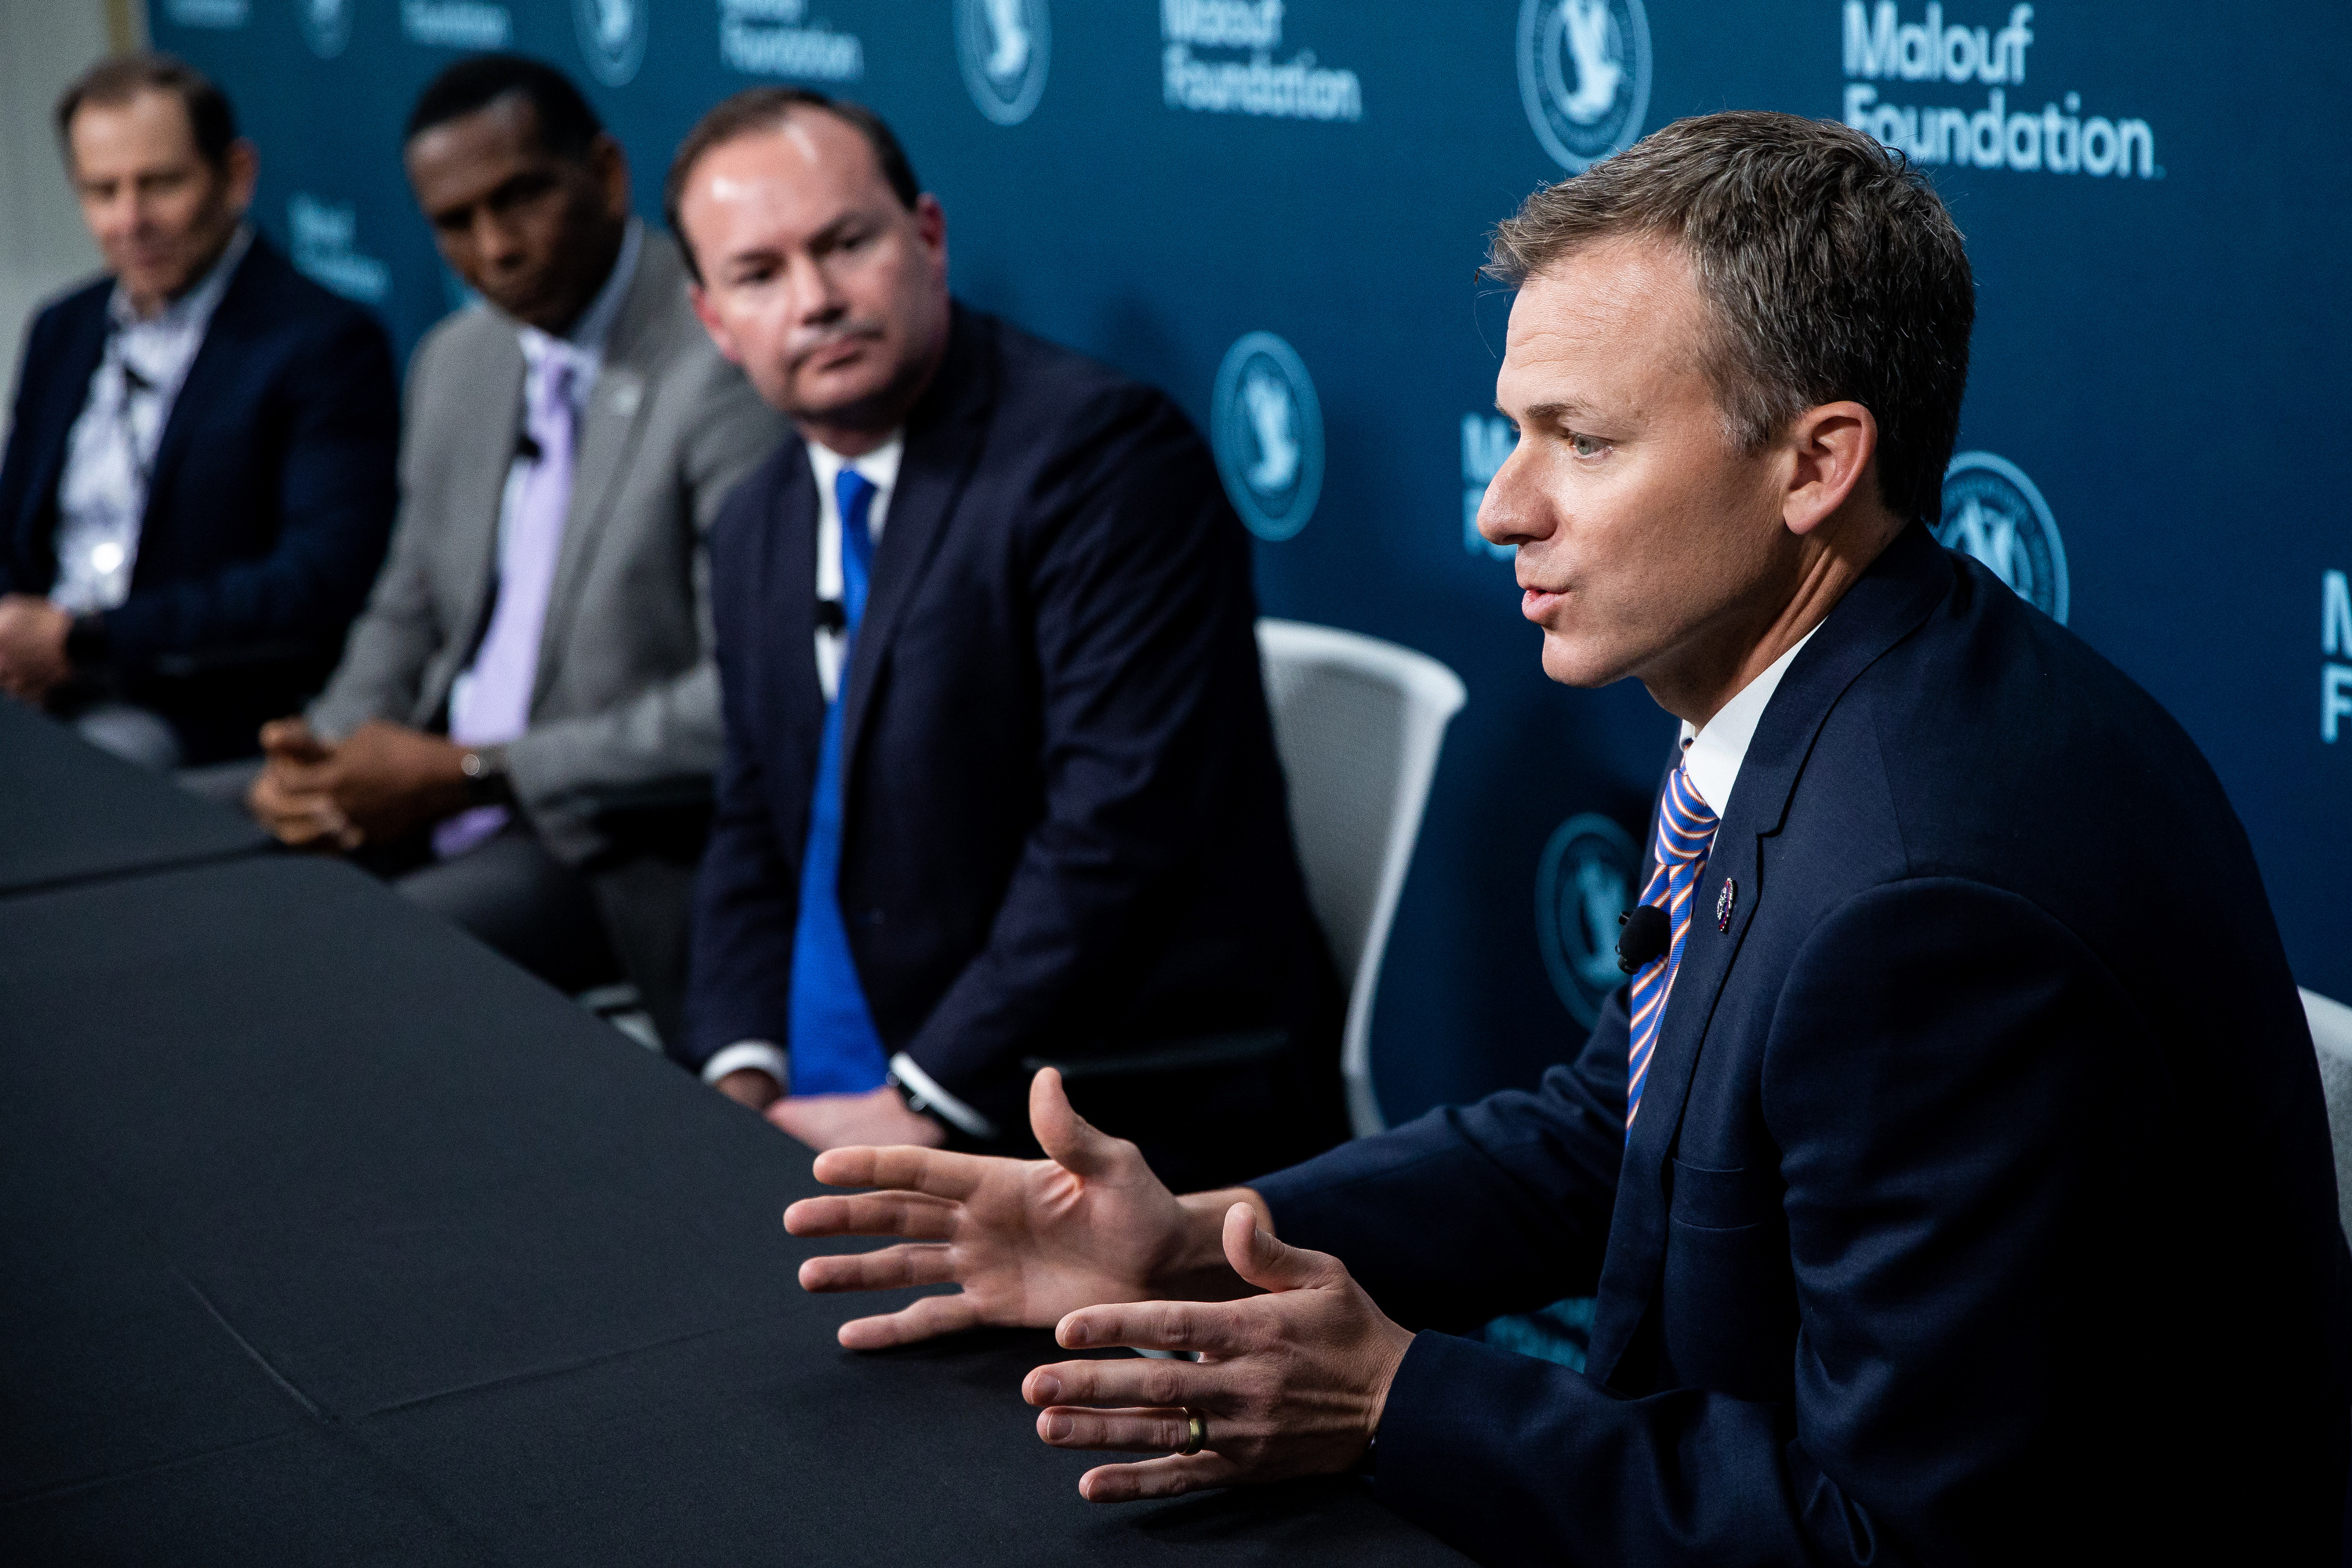 Utah Rep. Blake Moore, seated next to Sen. Mike Lee, Rep. John Curtis and Rep. Burgess Owens, gestures while talking at the Human Trafficking Policy and Education Summit in April 2021.